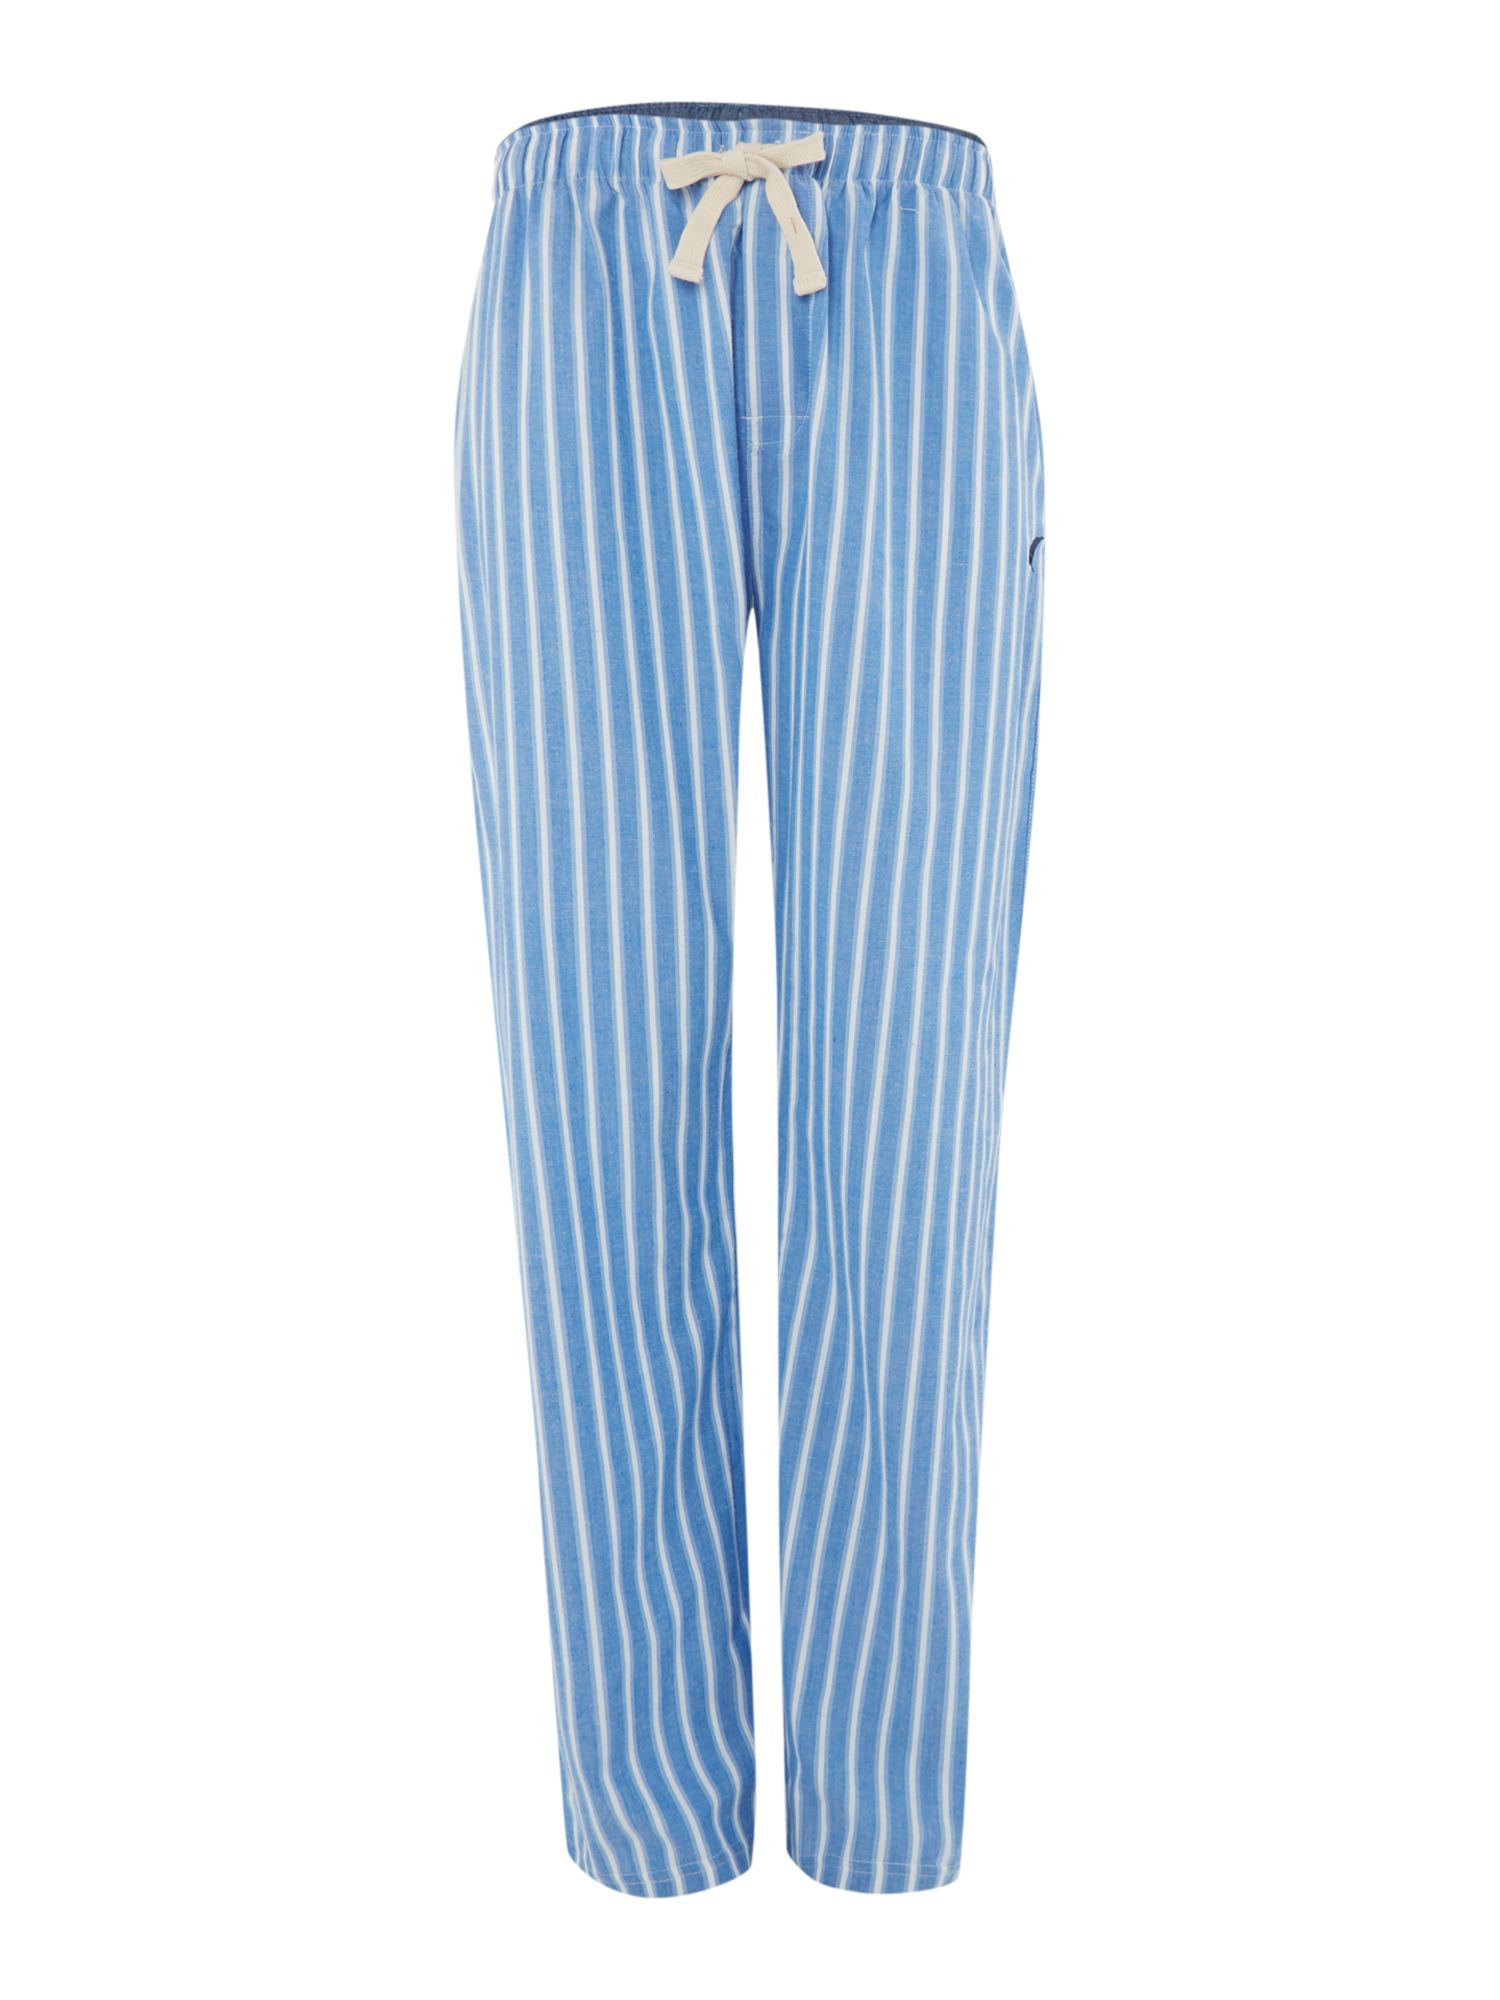 Chambray stripe pyjama pant